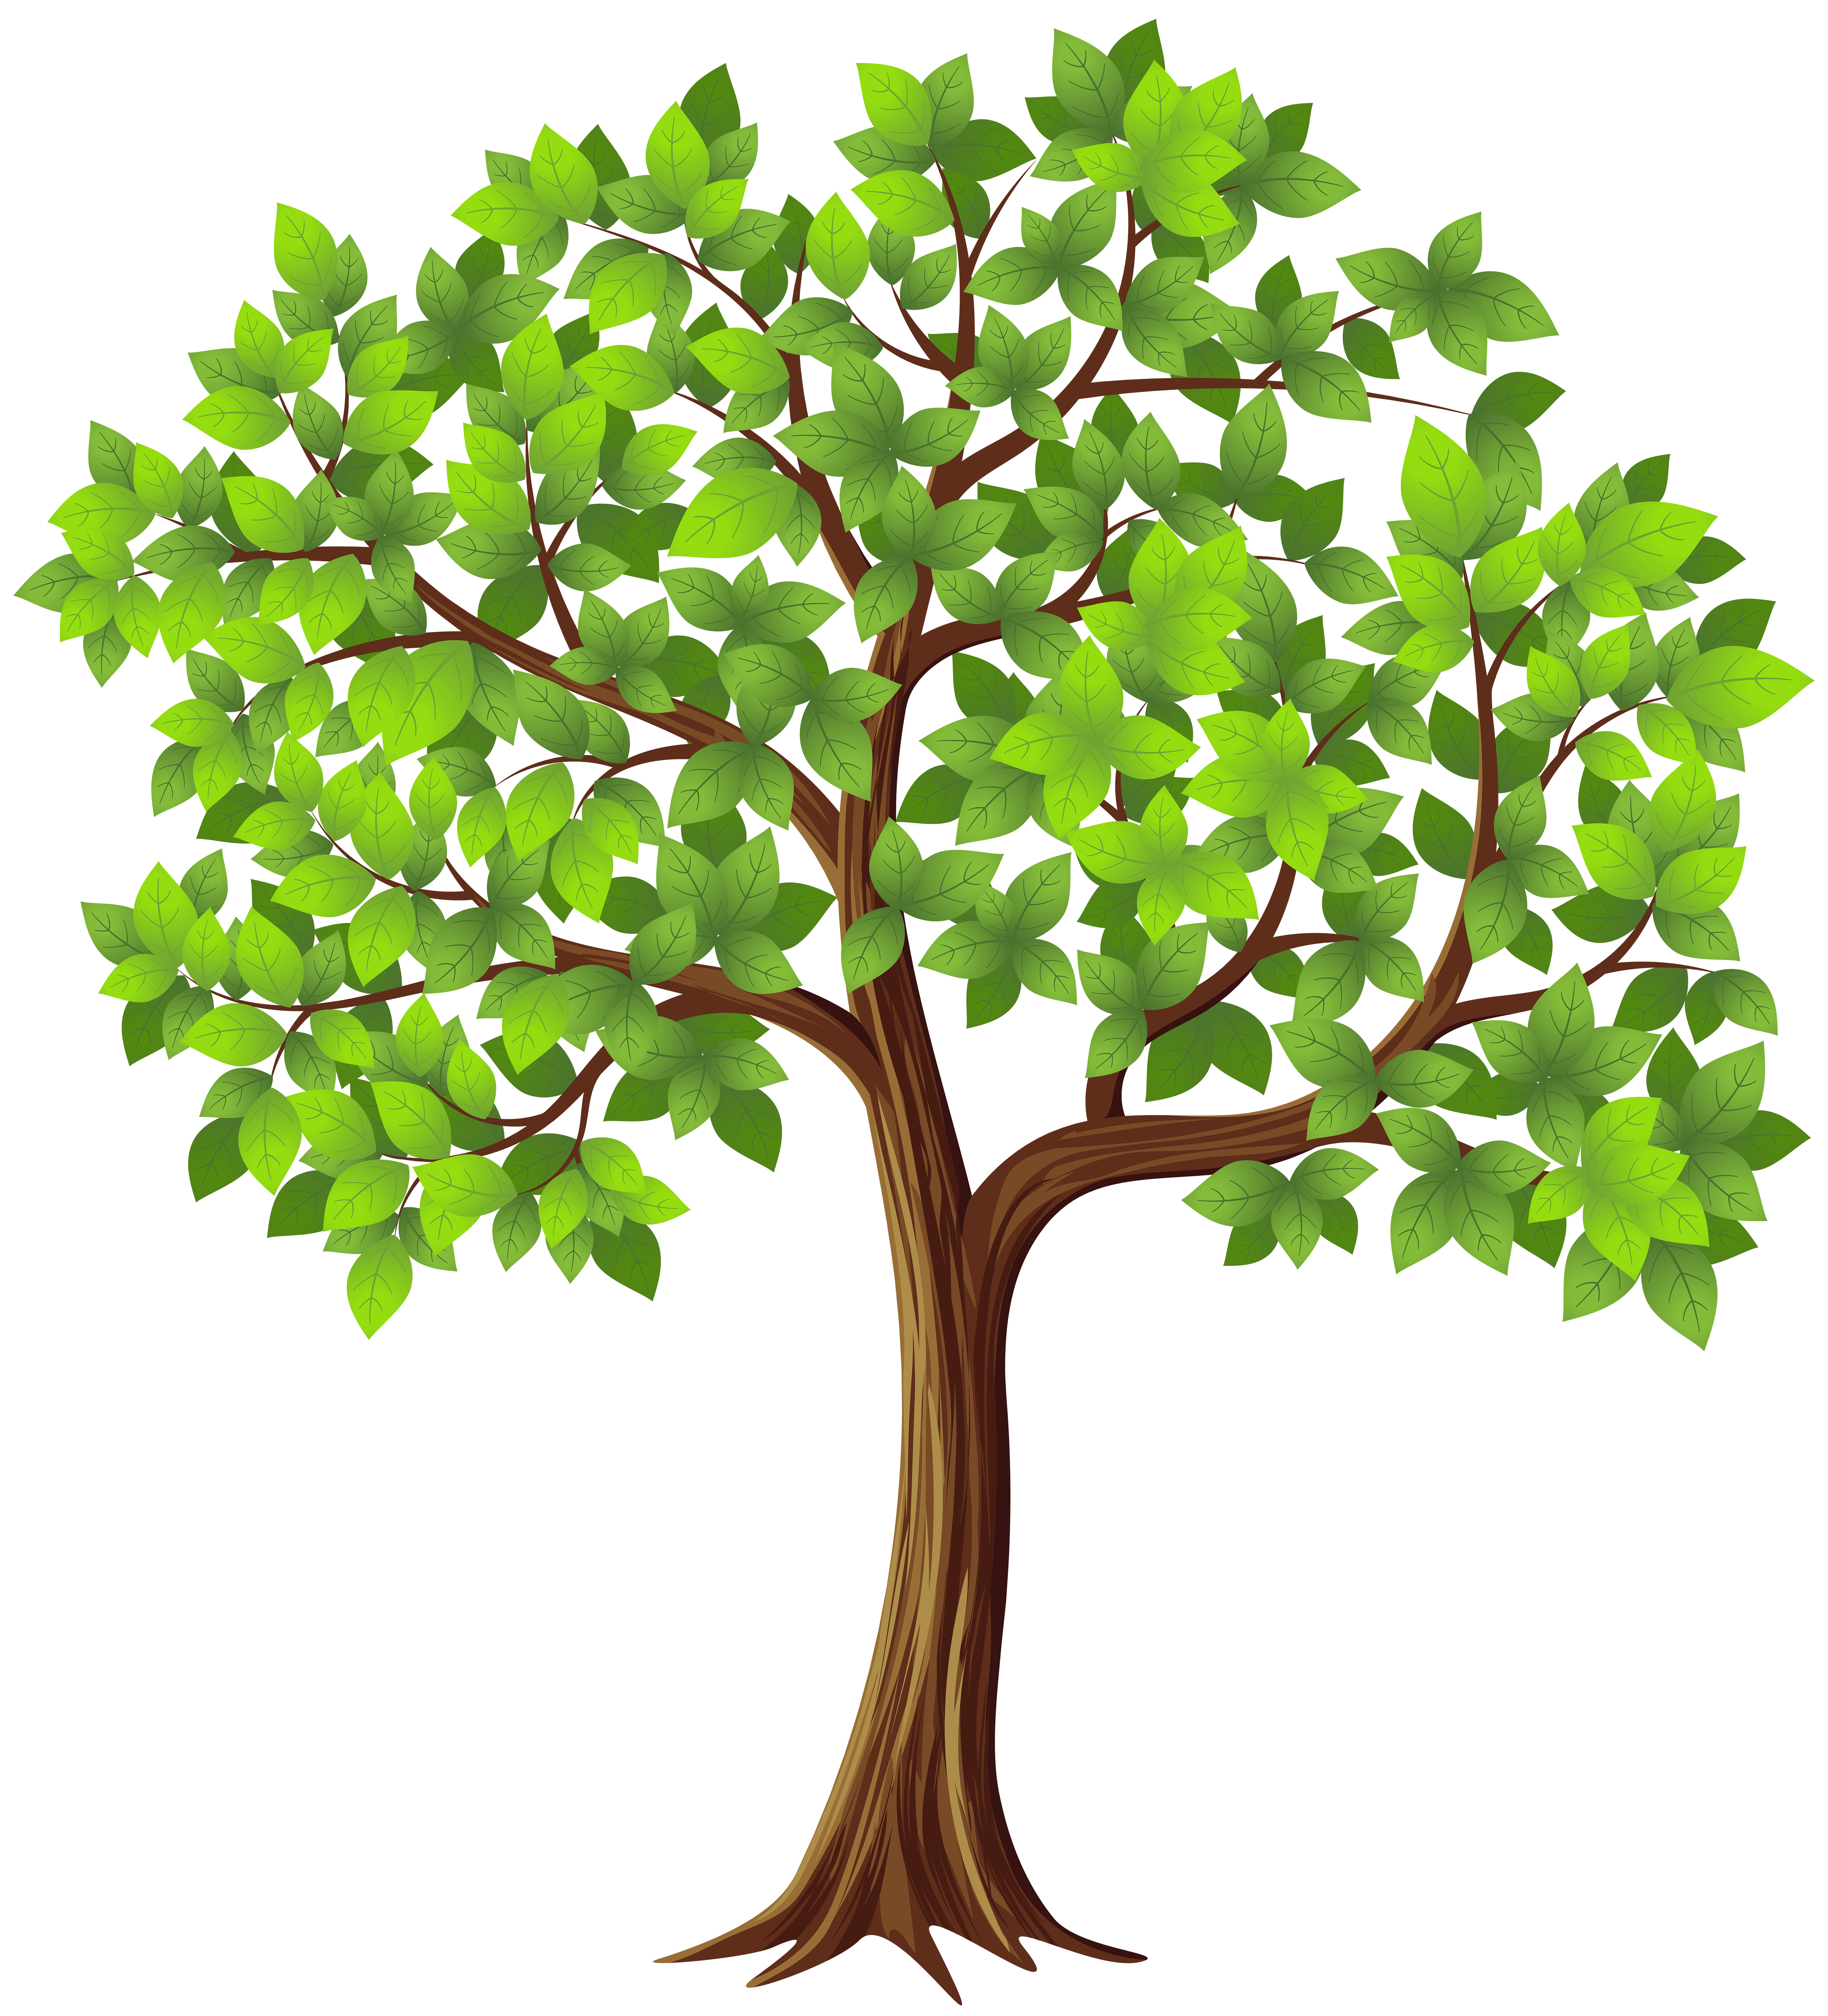 Tree Png Transparent Clip Art Image Free Download - Tree Clipart PNG